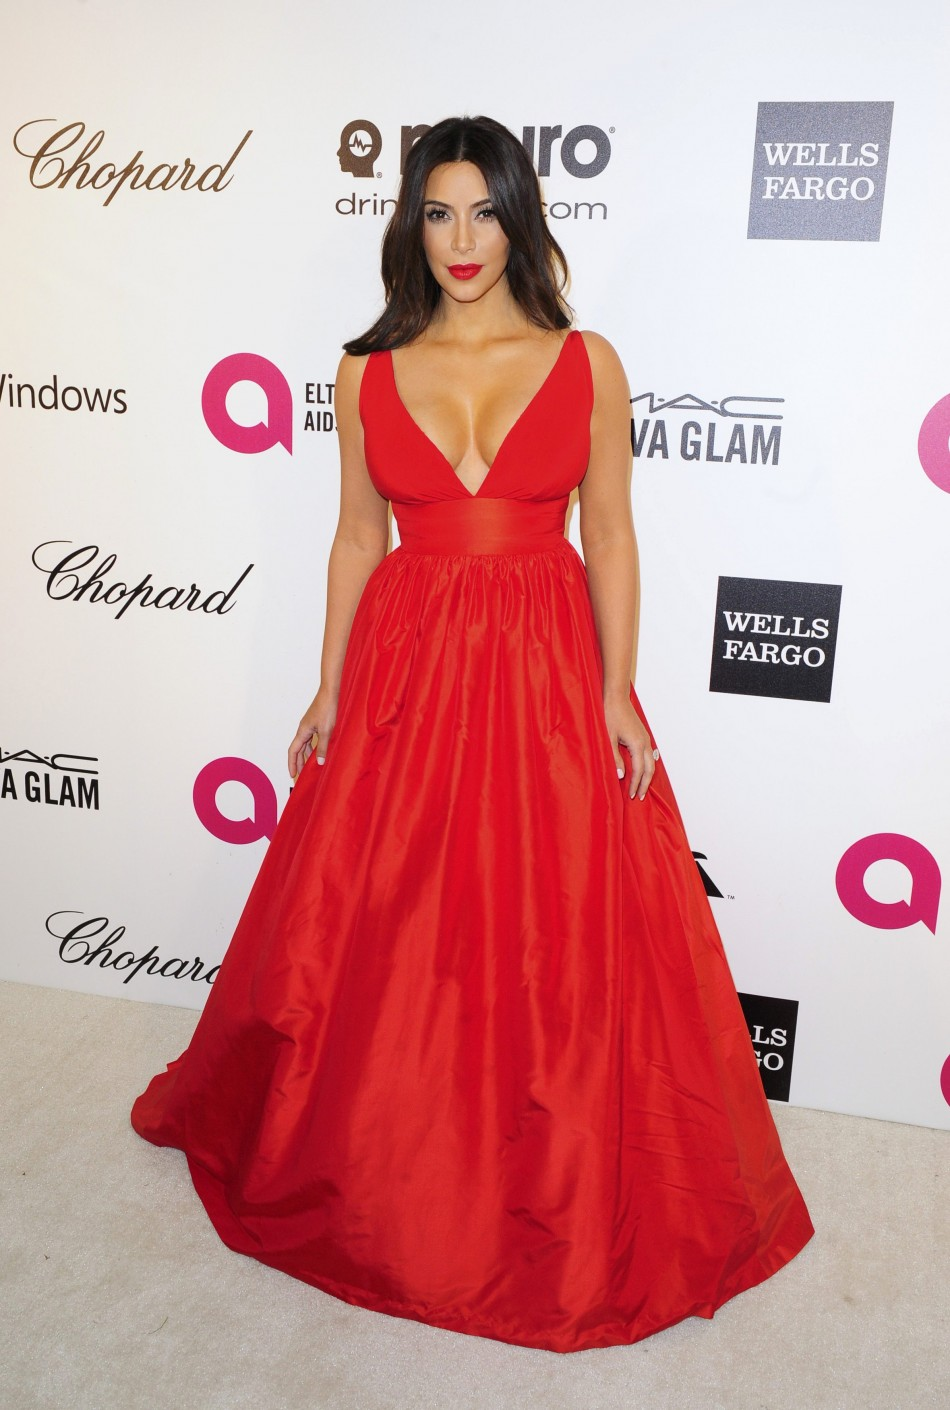 441139-kim-kardashian-arrives-at-the-2014-elton-john-aids-foundation-oscar-pa.jpg